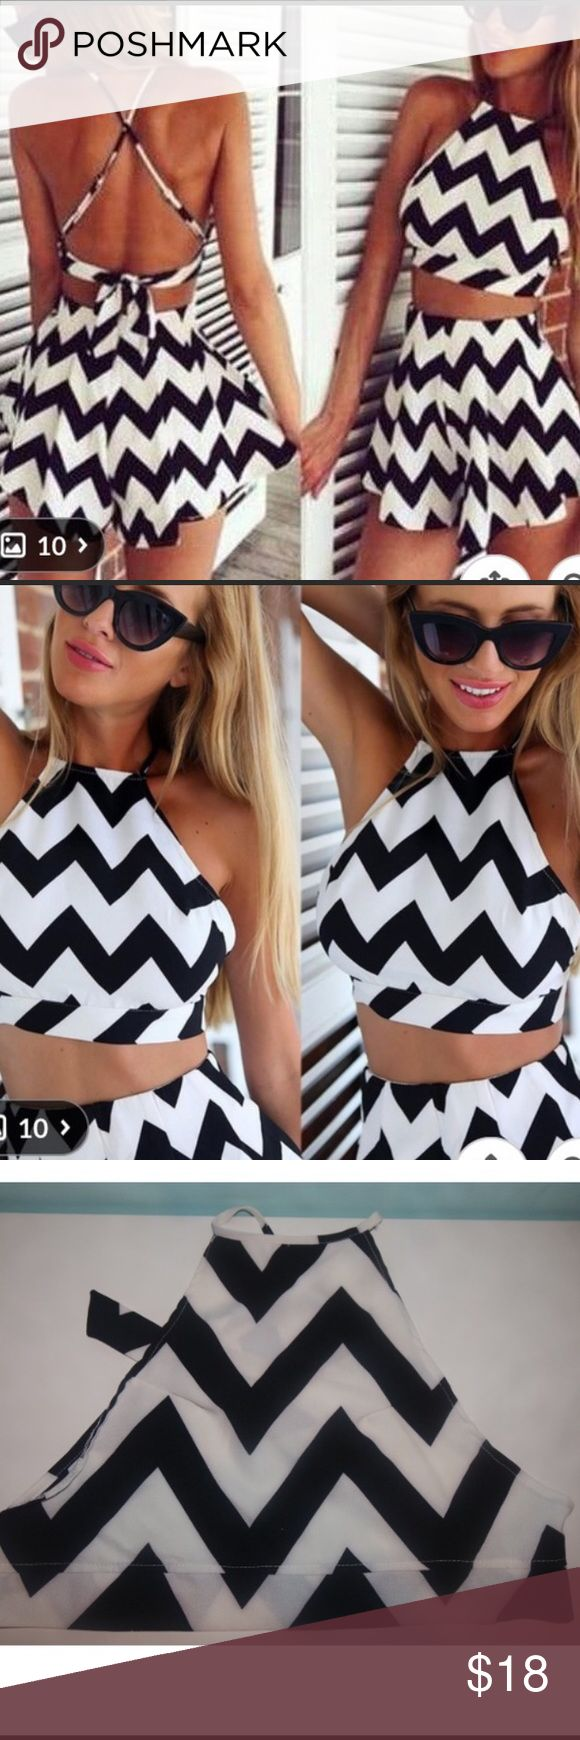 Crop top and shorts Two piece black and white chevron crop top and flowy shorts Other